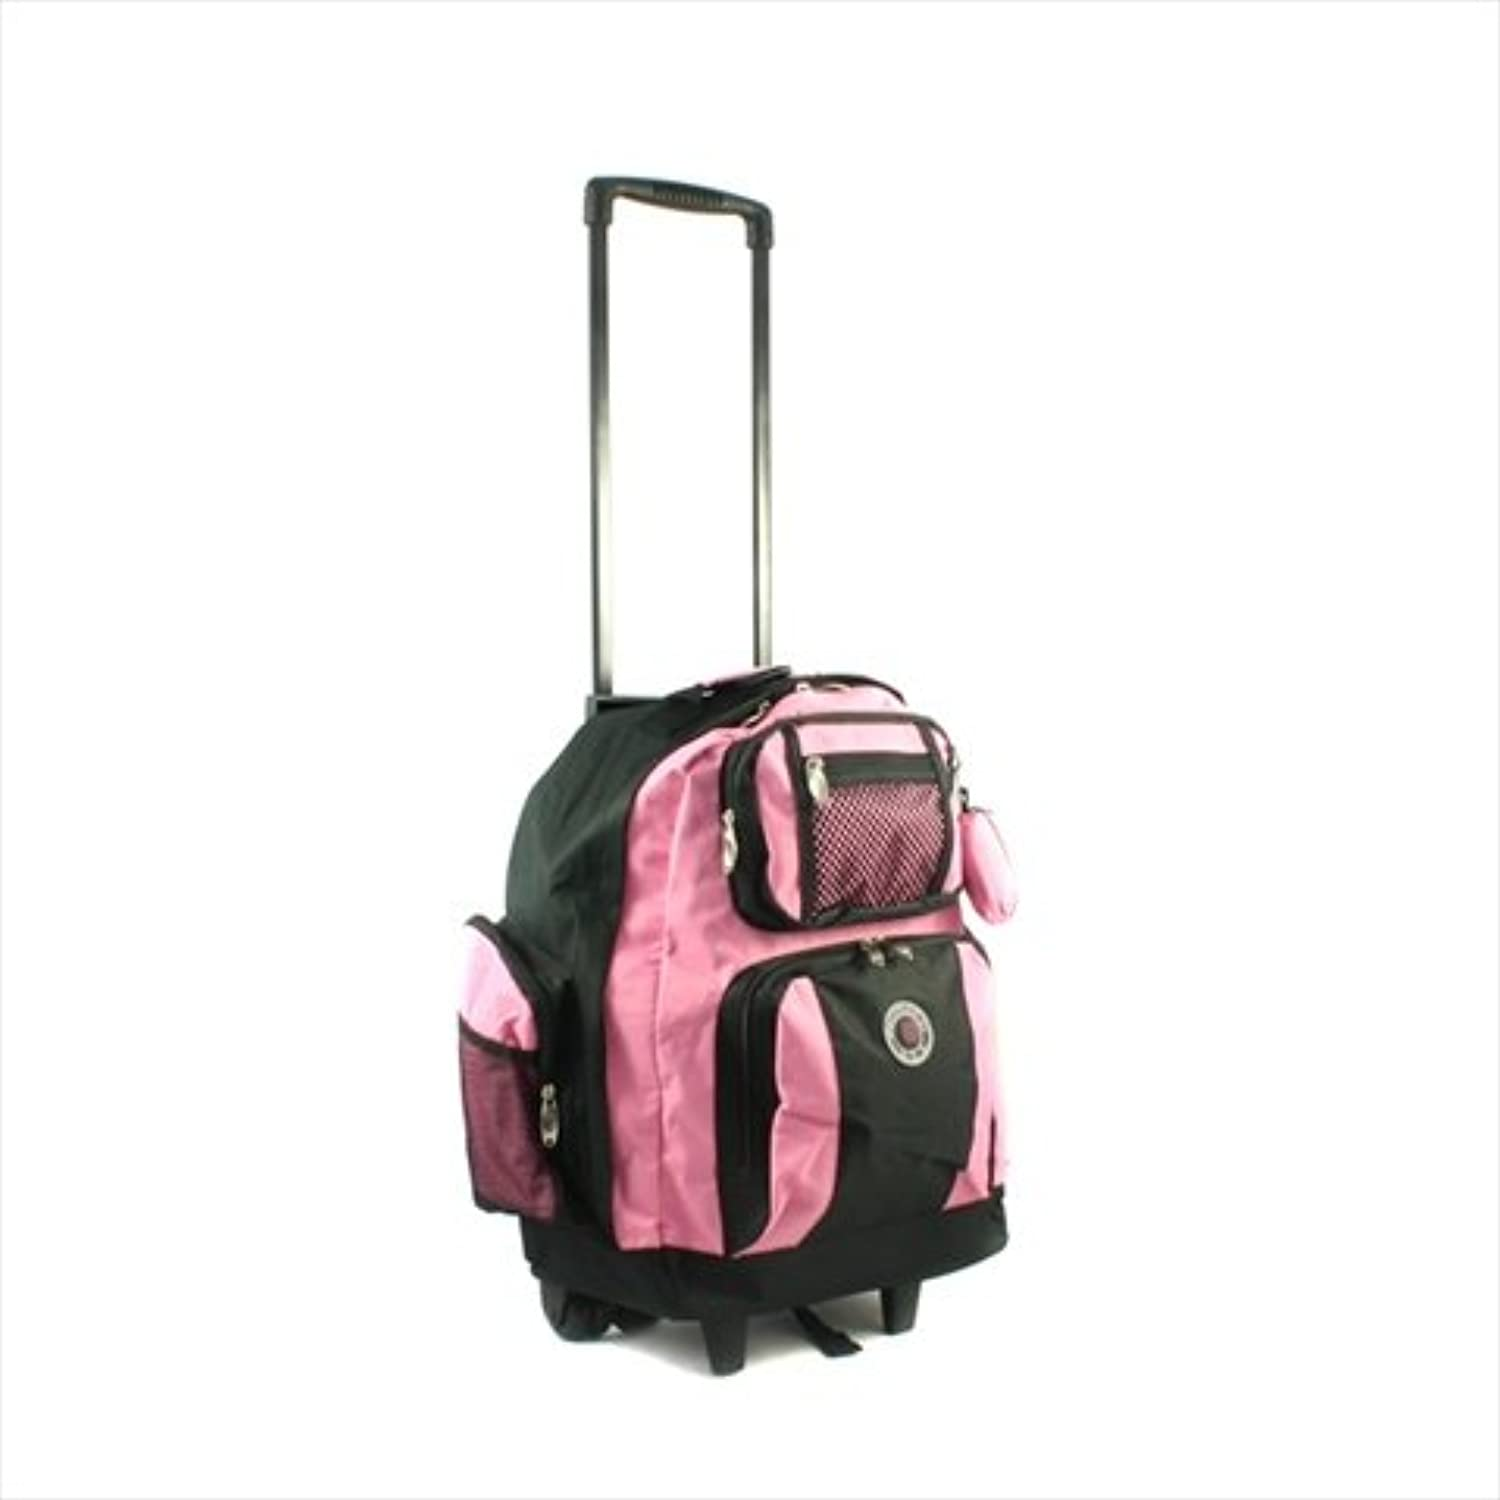 Transworld RollAway Deluxe Rolling Backpack  Pink